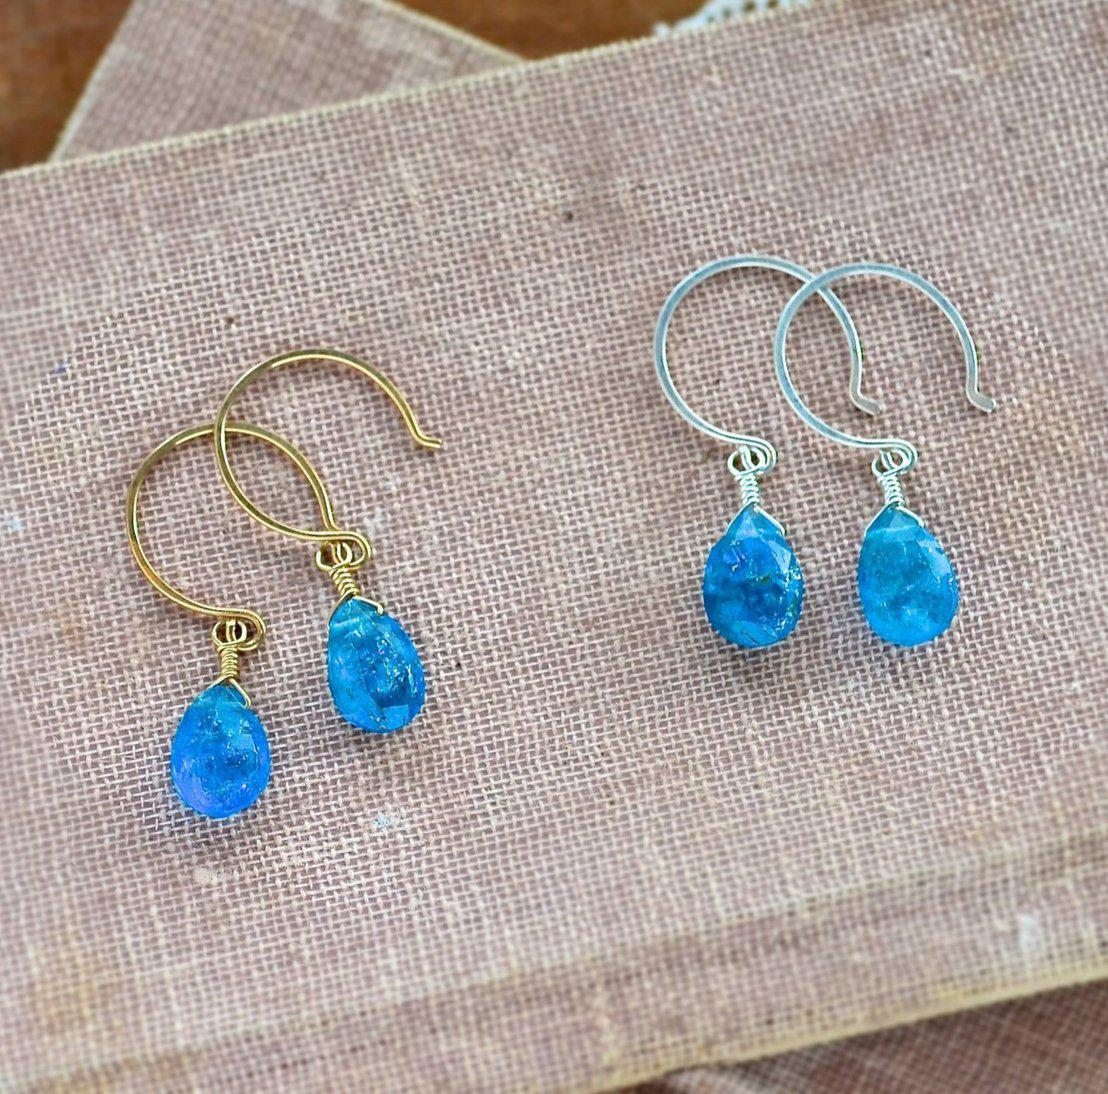 apatite neon products earrings steel stainless wanderlust hearts hypoallergenic blue stud